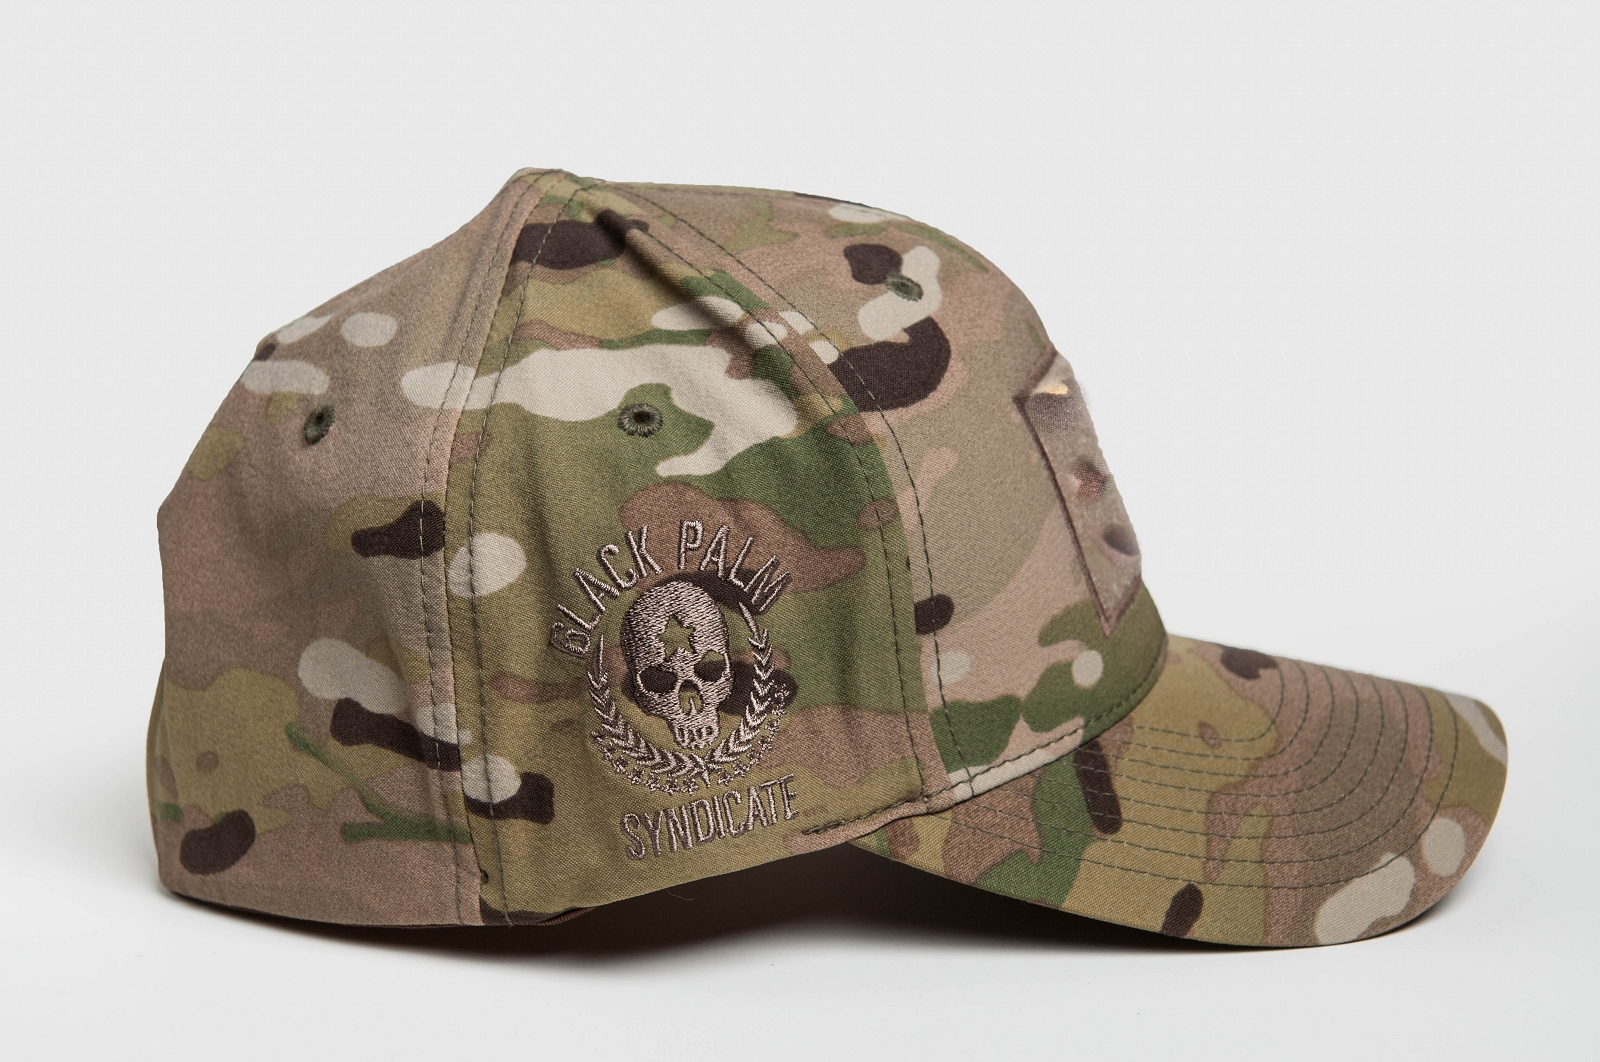 Black Palm Syndicate - One Cap To Rule Them All™ Soft Shell MultiCam Hat 6bc6a75a16e